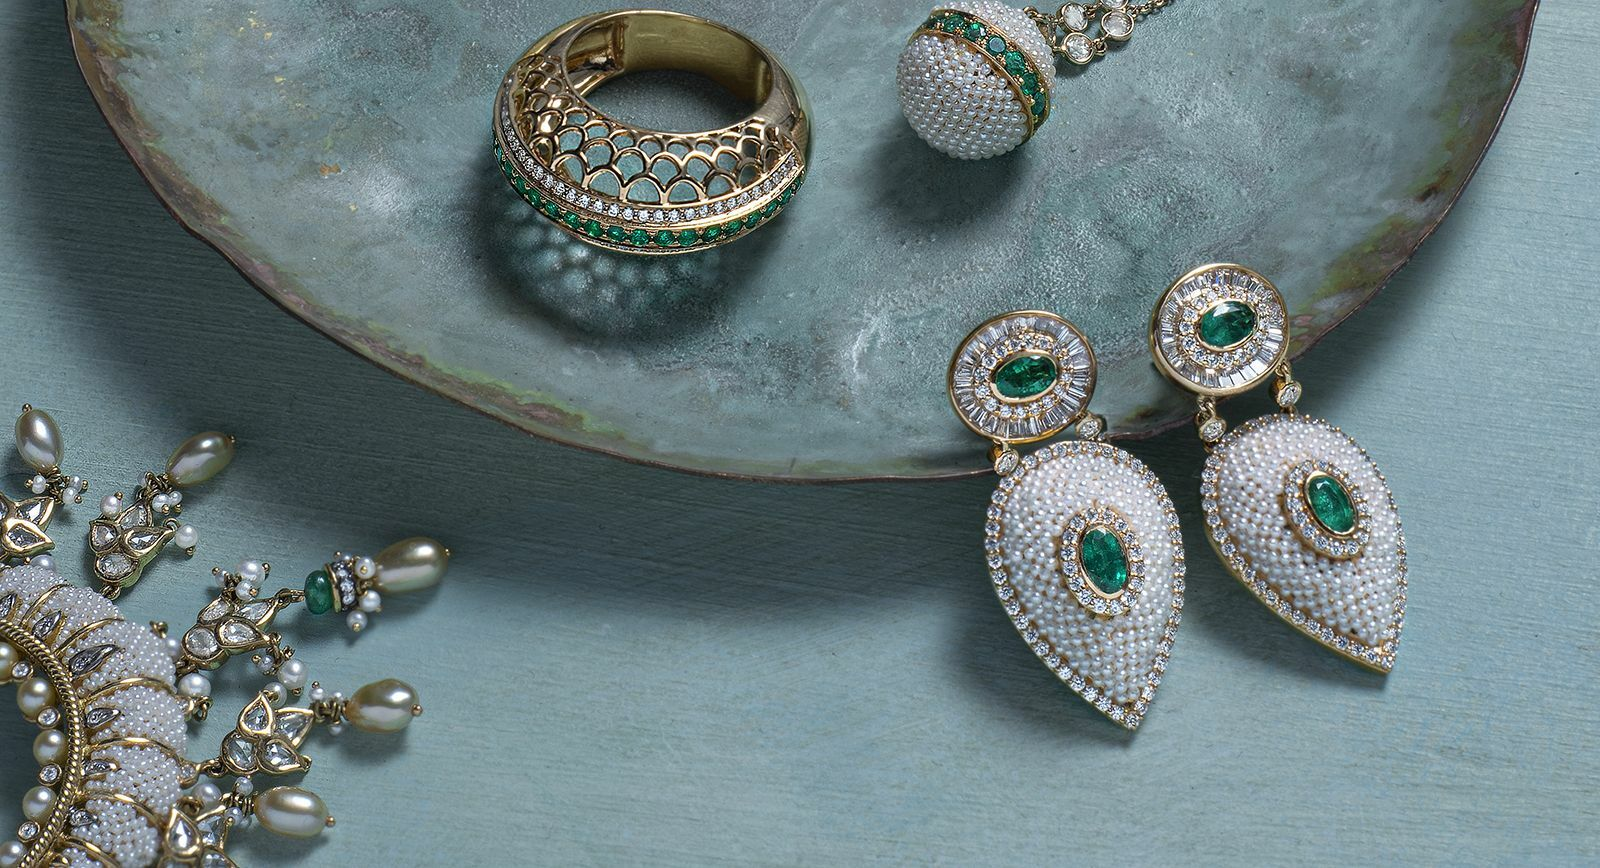 Moksh jewellery is inspired by the splendours of Mughal India